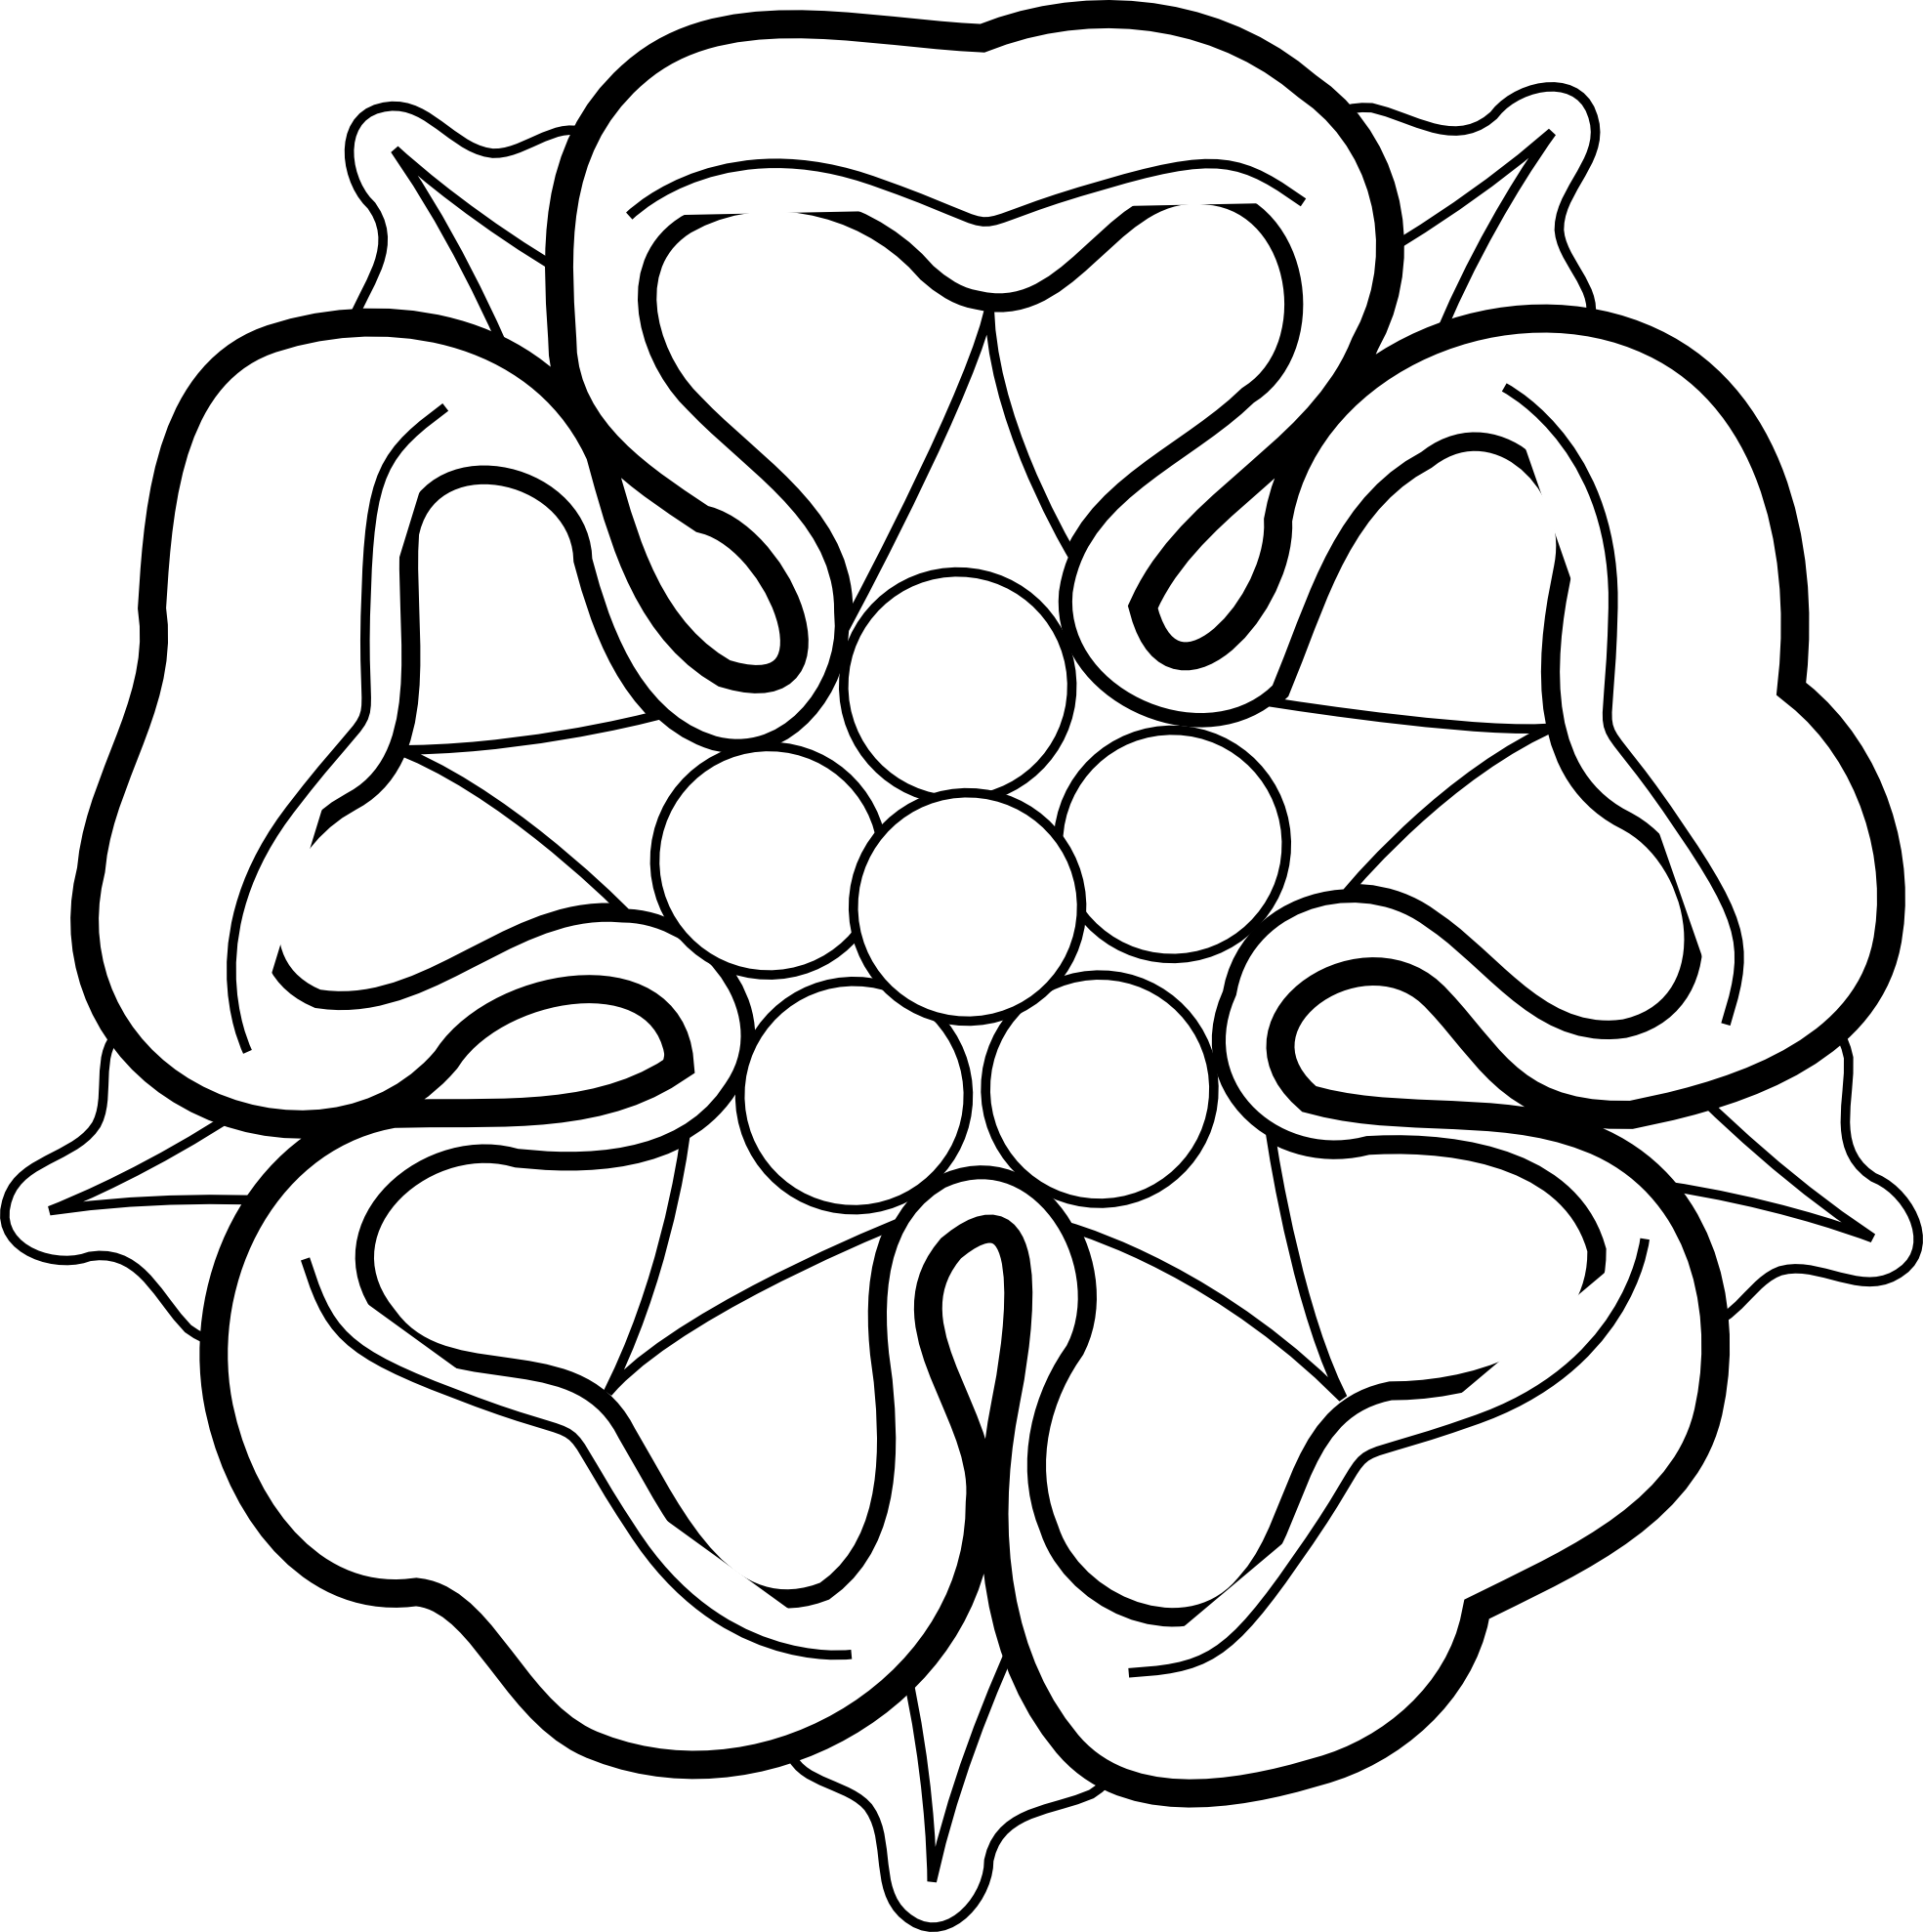 Rose Drawings Black And White - Cliparts.co - Black and White Roses with Color